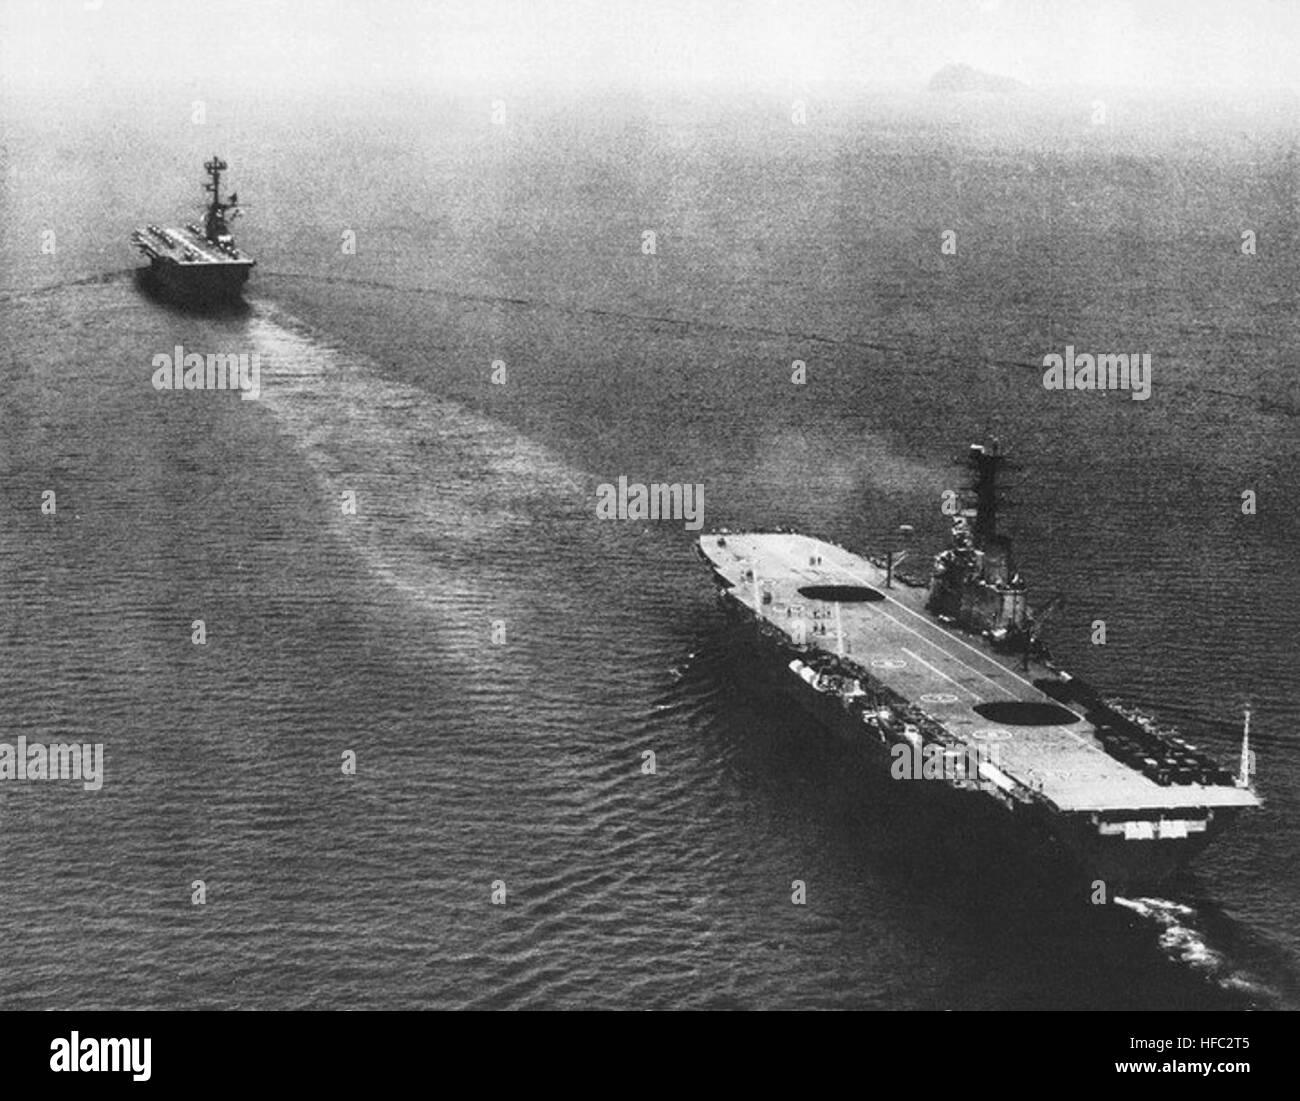 HMAS Sydney (R17) and USS Valley Forge (LPH-8) underway in May 1964 - Stock Image